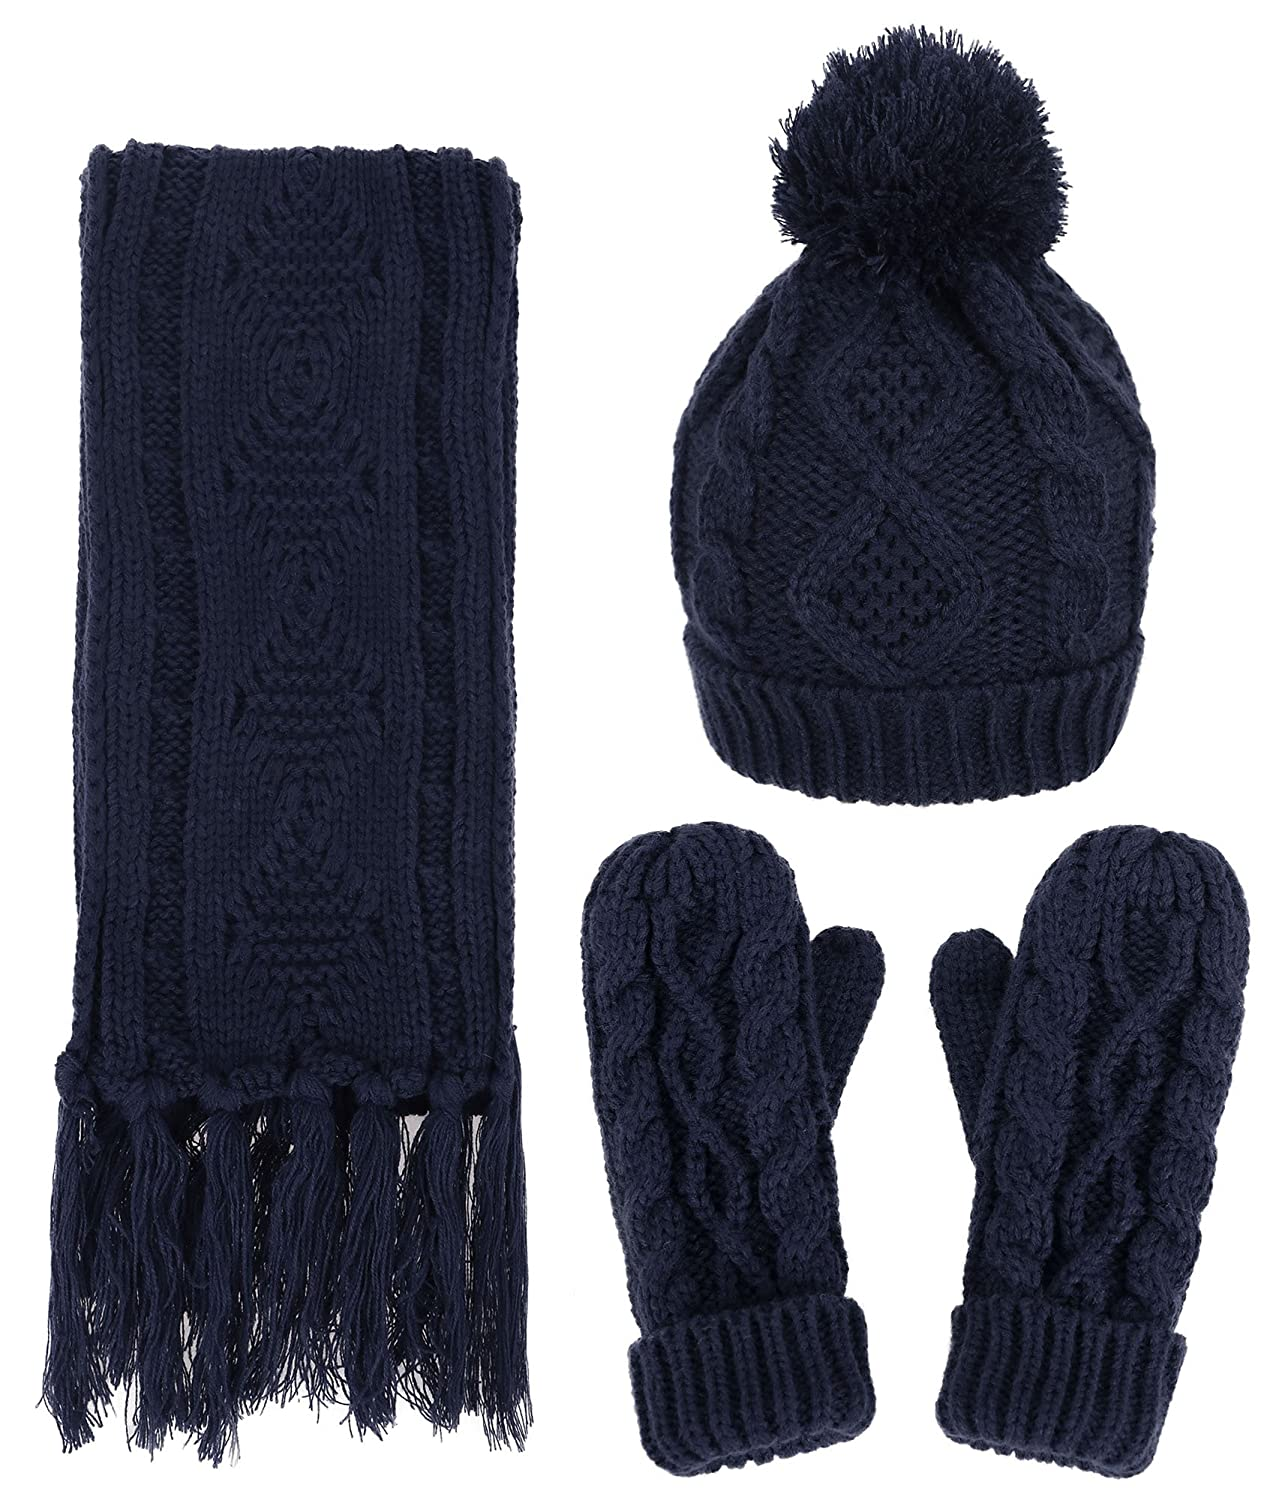 Women's Winter 3PC Cable Knit Beanie Hat Gloves& Scarf Set Simplicity MC171014300117-CA